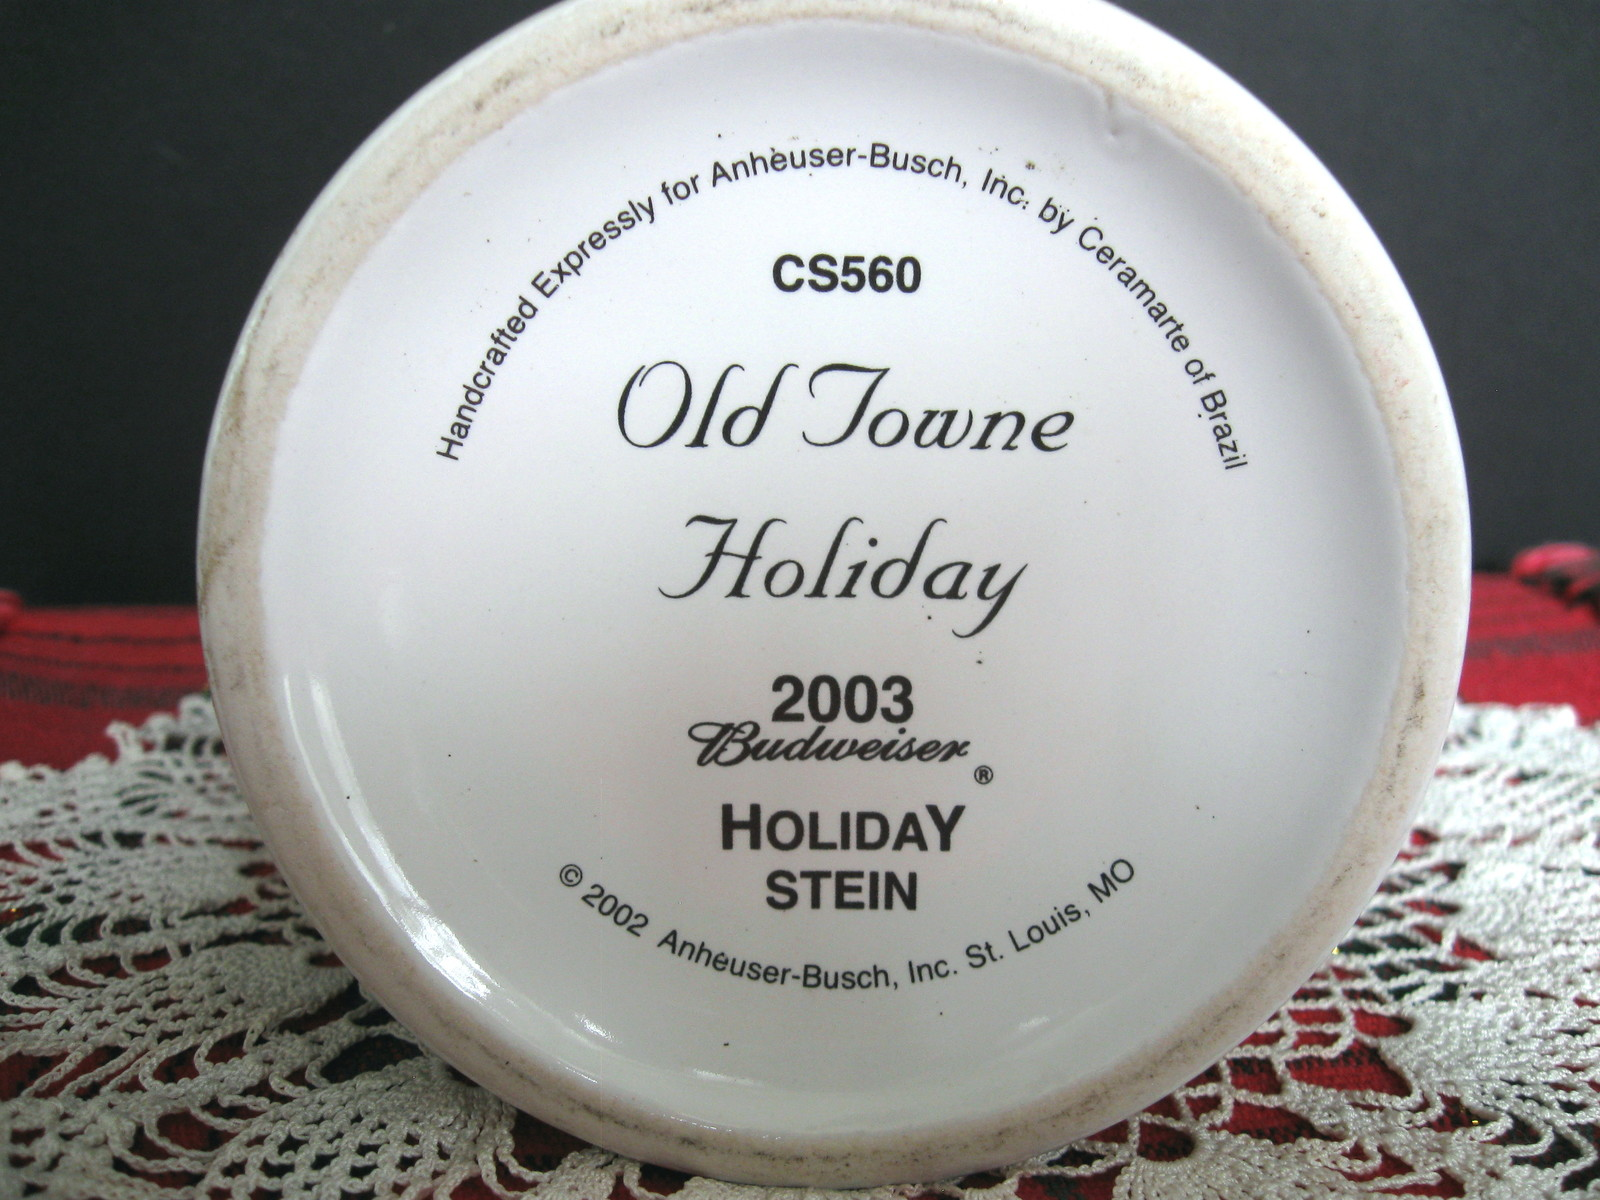 2003 Budweiser Holiday Stein - Old Towne Holiday - No. CS560 - No Box image 9